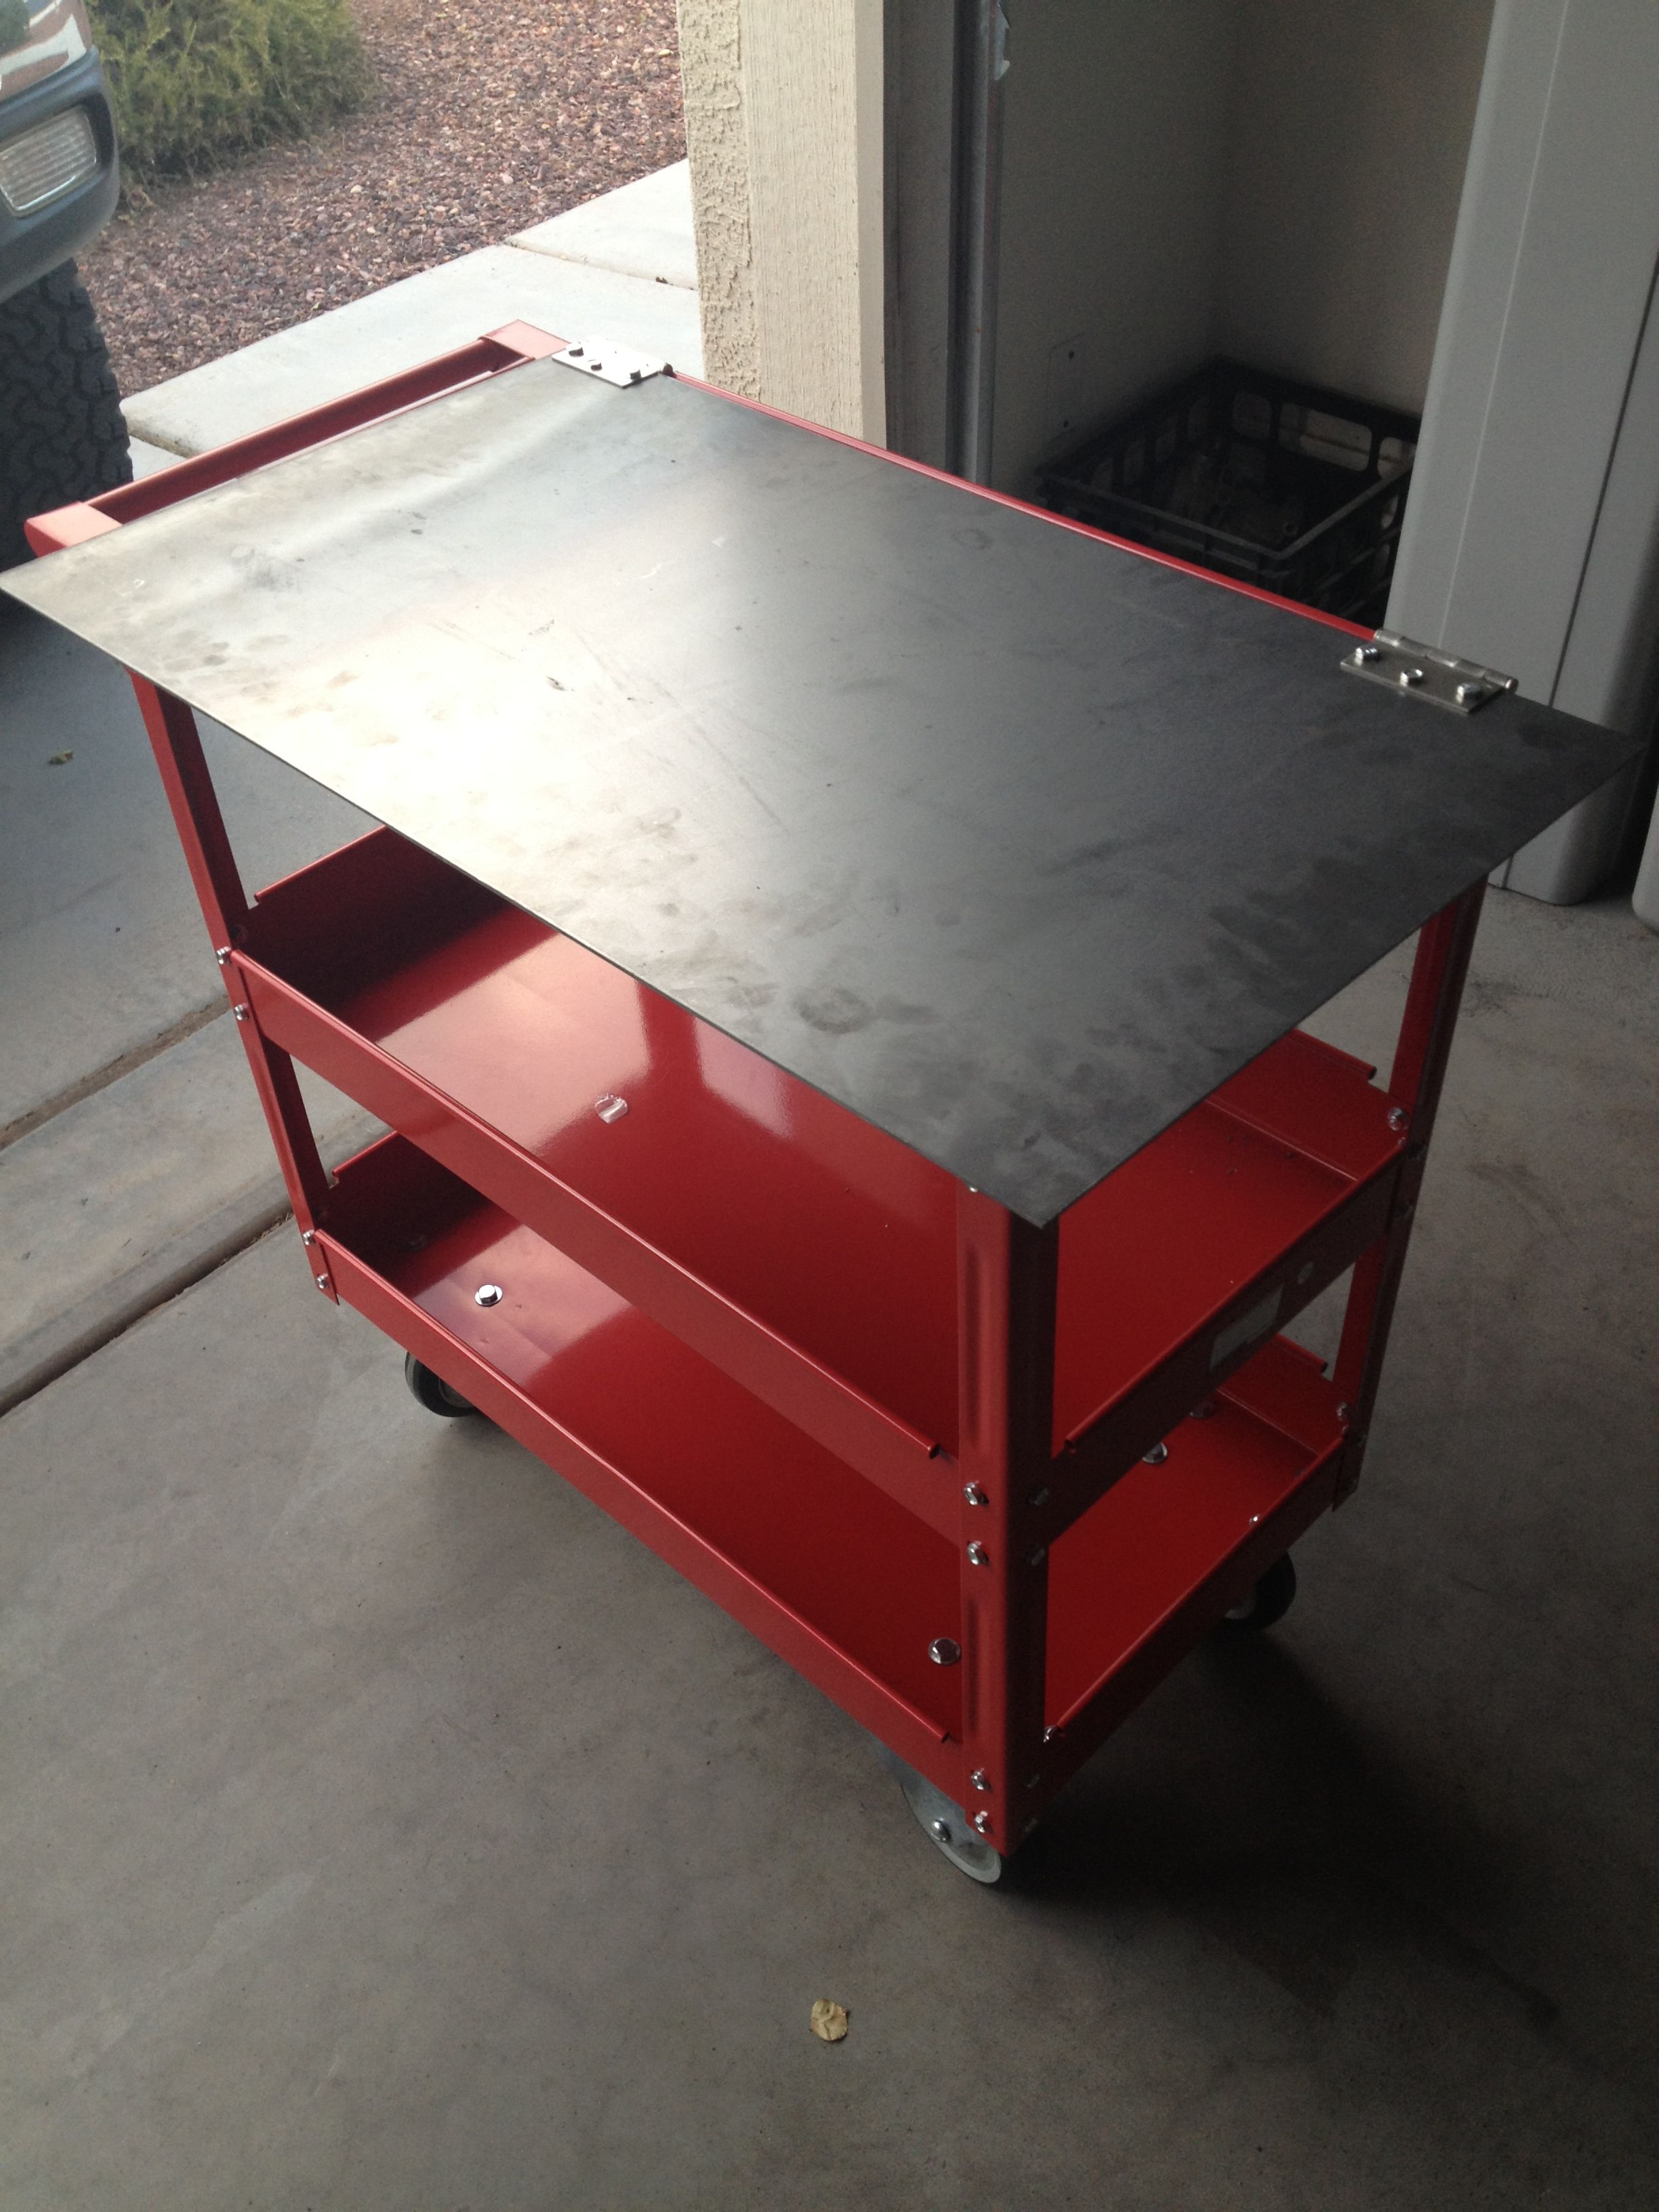 I Purchased This Service Cart From Harbor Freight To Turn Into A Small Rolling Welding Table I Purchased A 1 8 T Welding Table Welding Projects Welding Bench